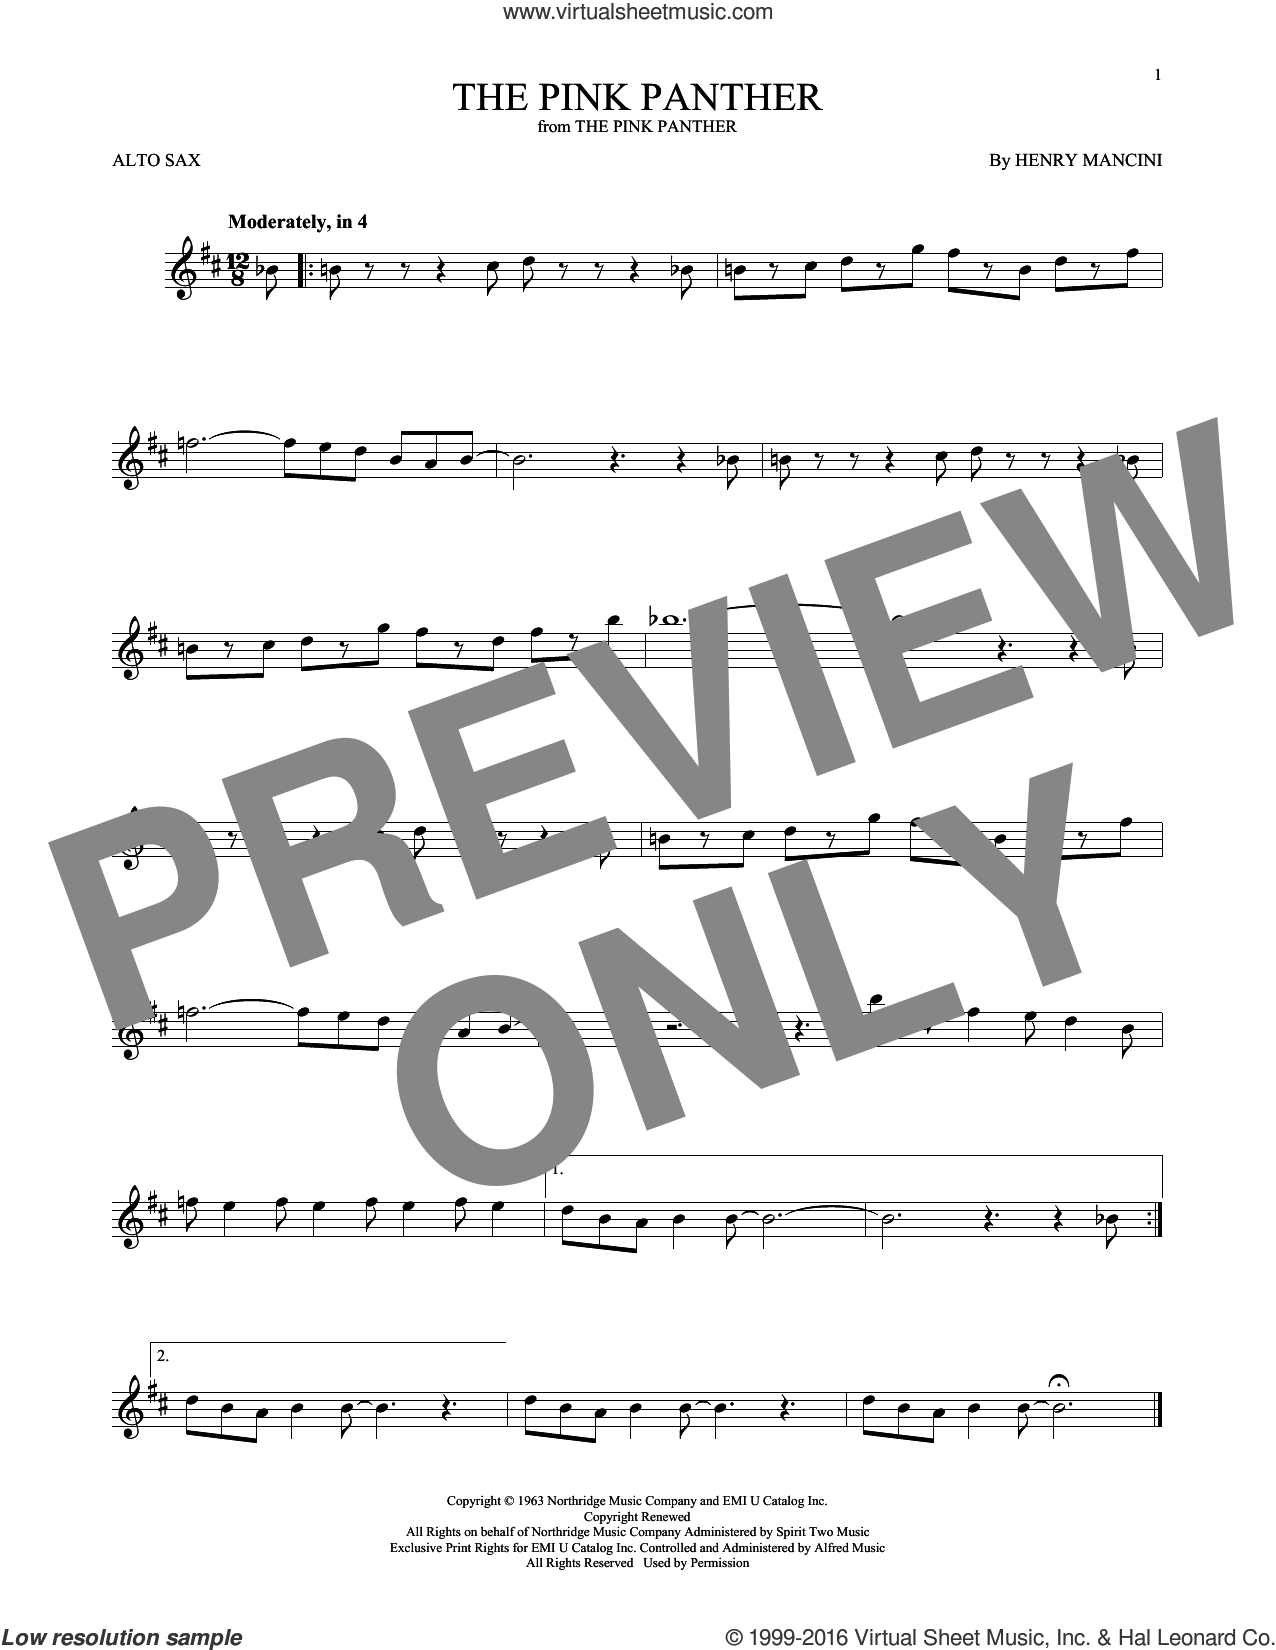 Mancini - The Pink Panther Sheet Music For Alto Saxophone Solo - Free Printable Alto Saxophone Sheet Music Pink Panther